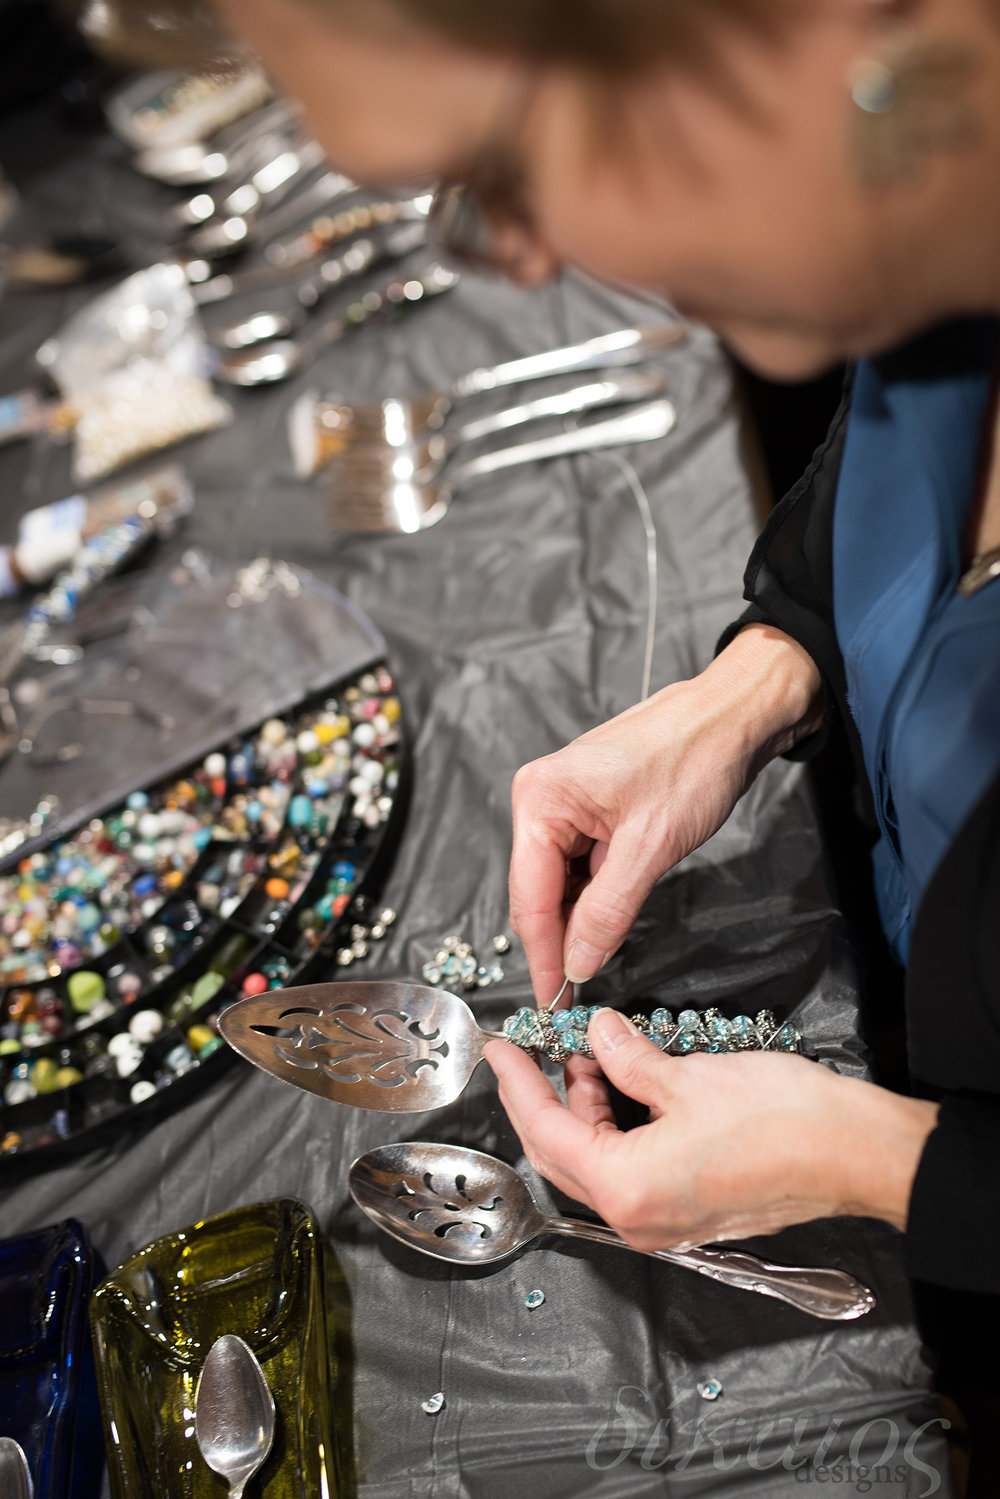 January is the perfect time for classes, we had a great time with this beading class at Judah Studios.